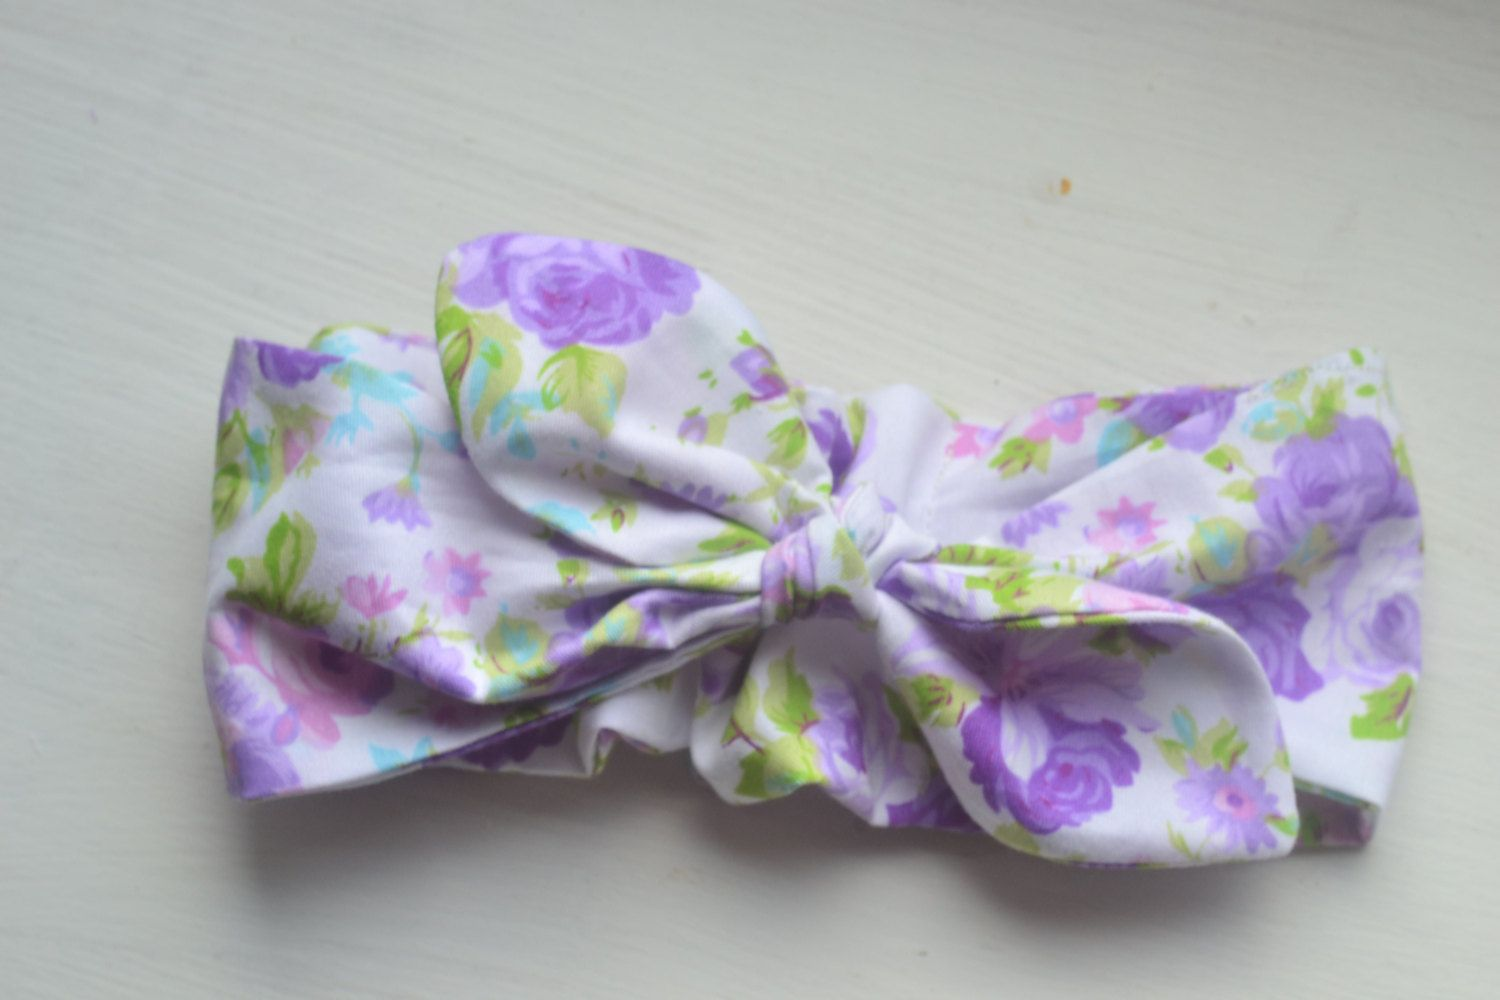 violet baby headband lavender headband 100% organic cotton headband violet baby headwrap girl knot headband summer baby outfit girl turban by SweetSwaddle on Etsy